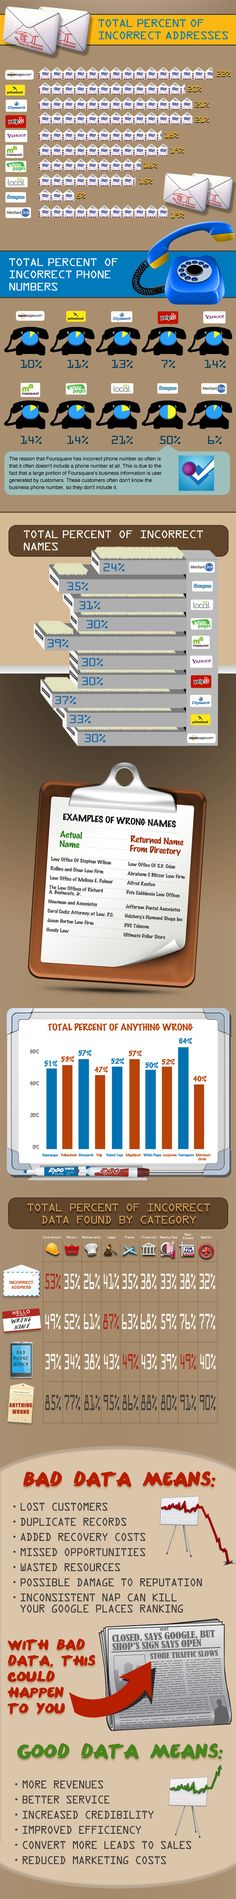 Infographic by Yext that takes a deep dive into the accuracy of business listings on the Web.